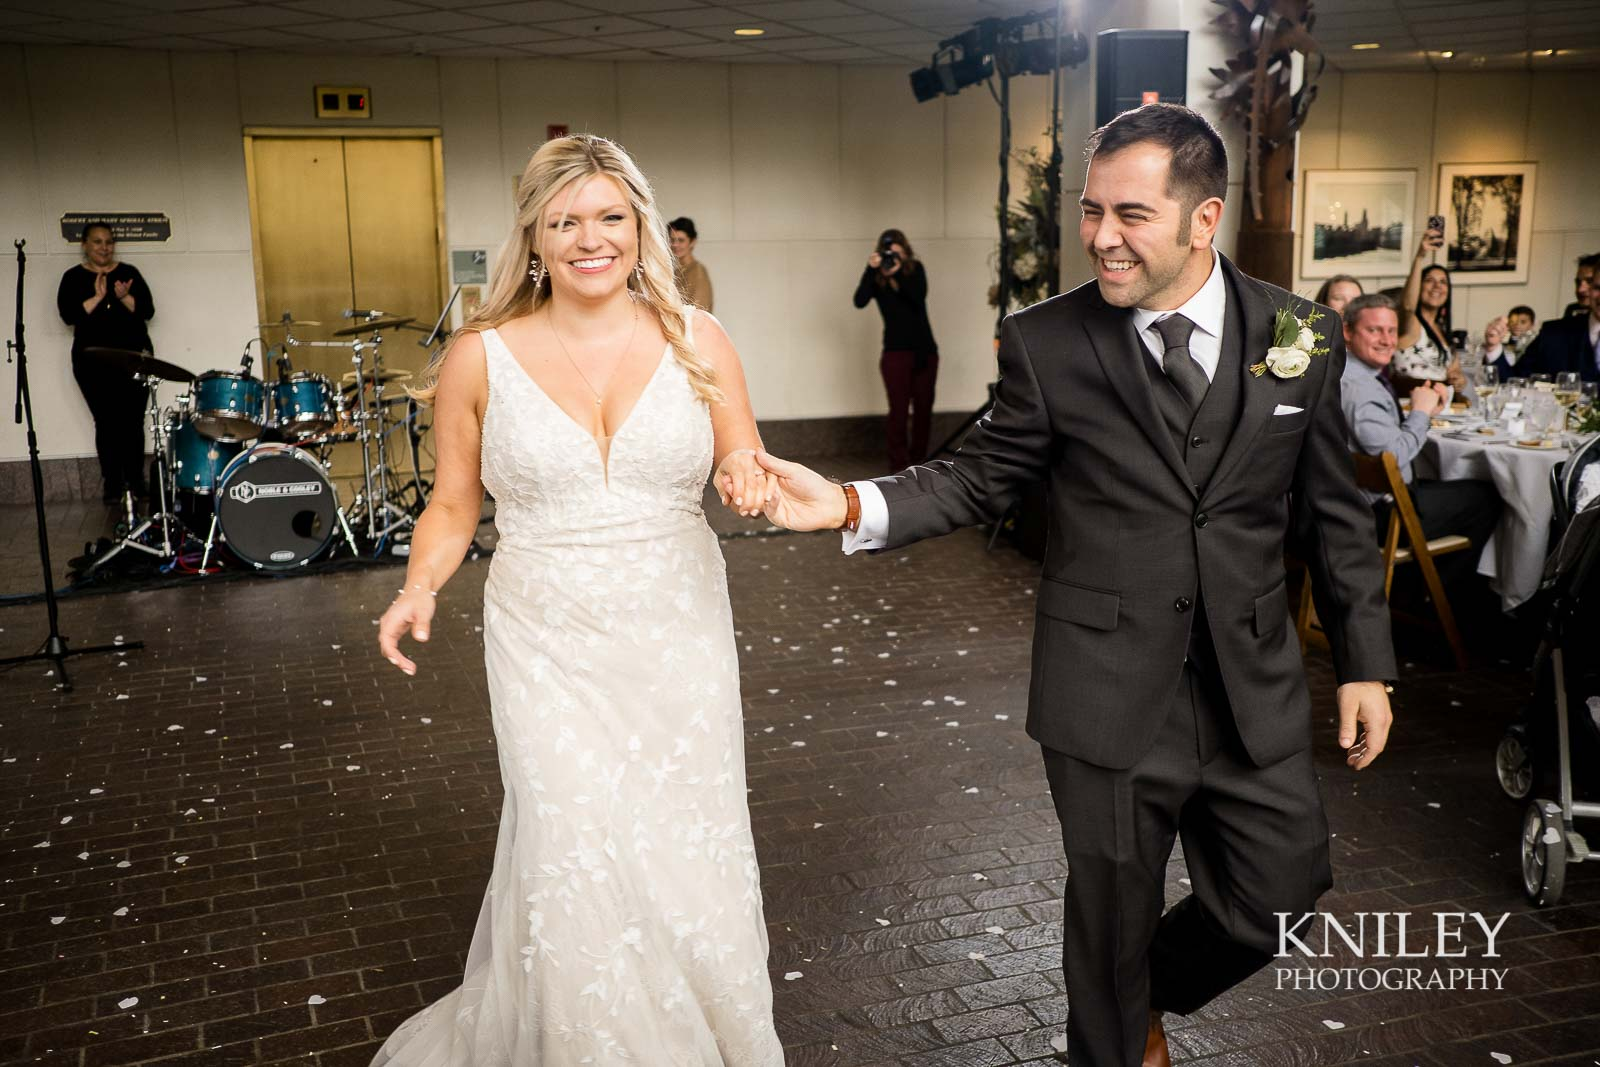 51-Max-of-Eastman-Wedding-and-Reception-Rochester-NY-Kniley-Photography.jpg